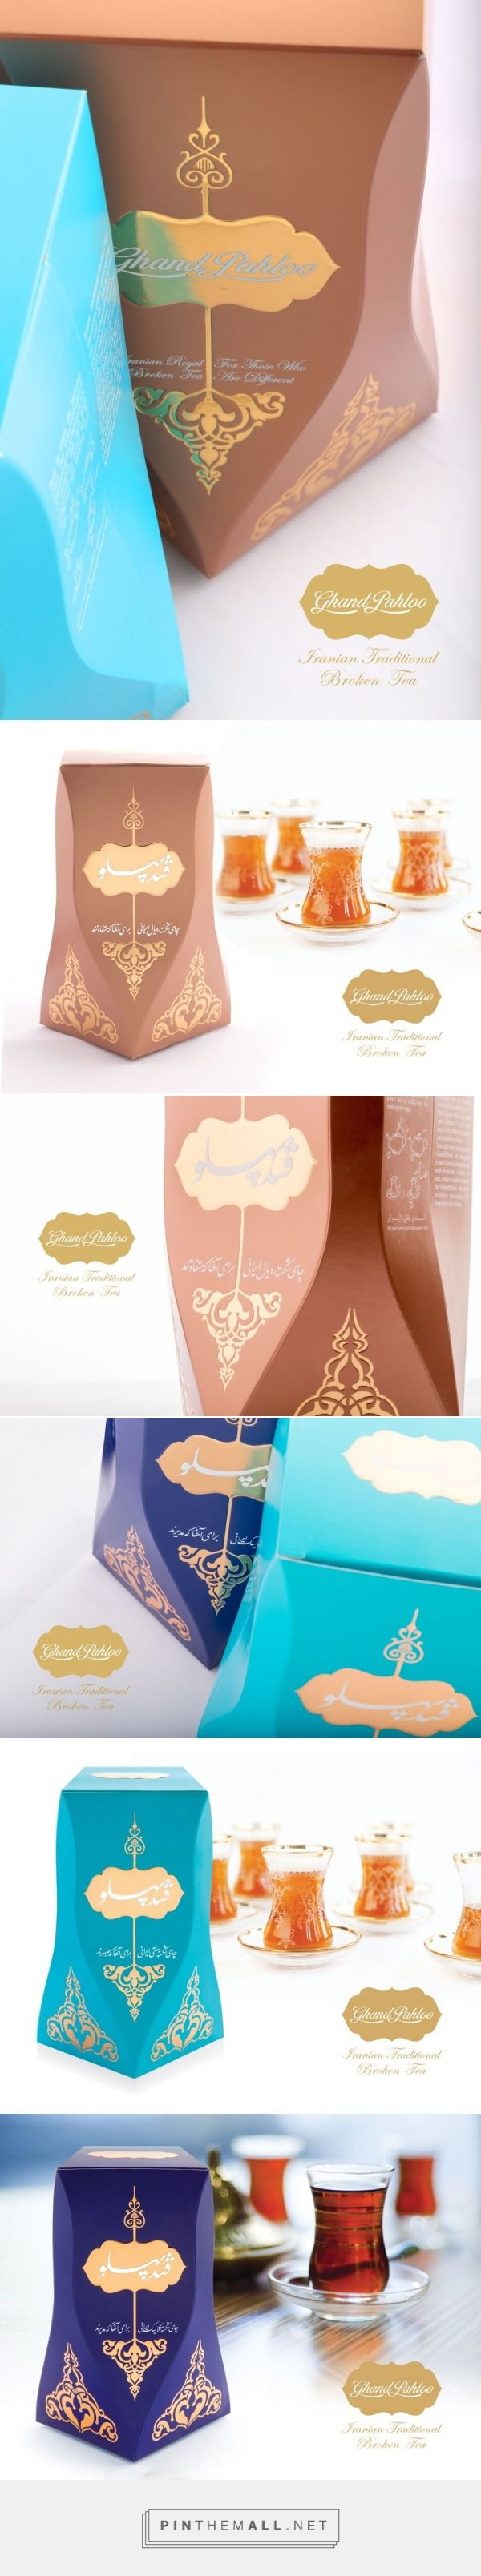 Ghand Pahloo - Iranian Traditional Tea #packaging designed by Masoud Rostami (Iran) - http://www.packagingoftheworld.com/2016/04/ghand-pahloo-iranian-traditional-broken.html